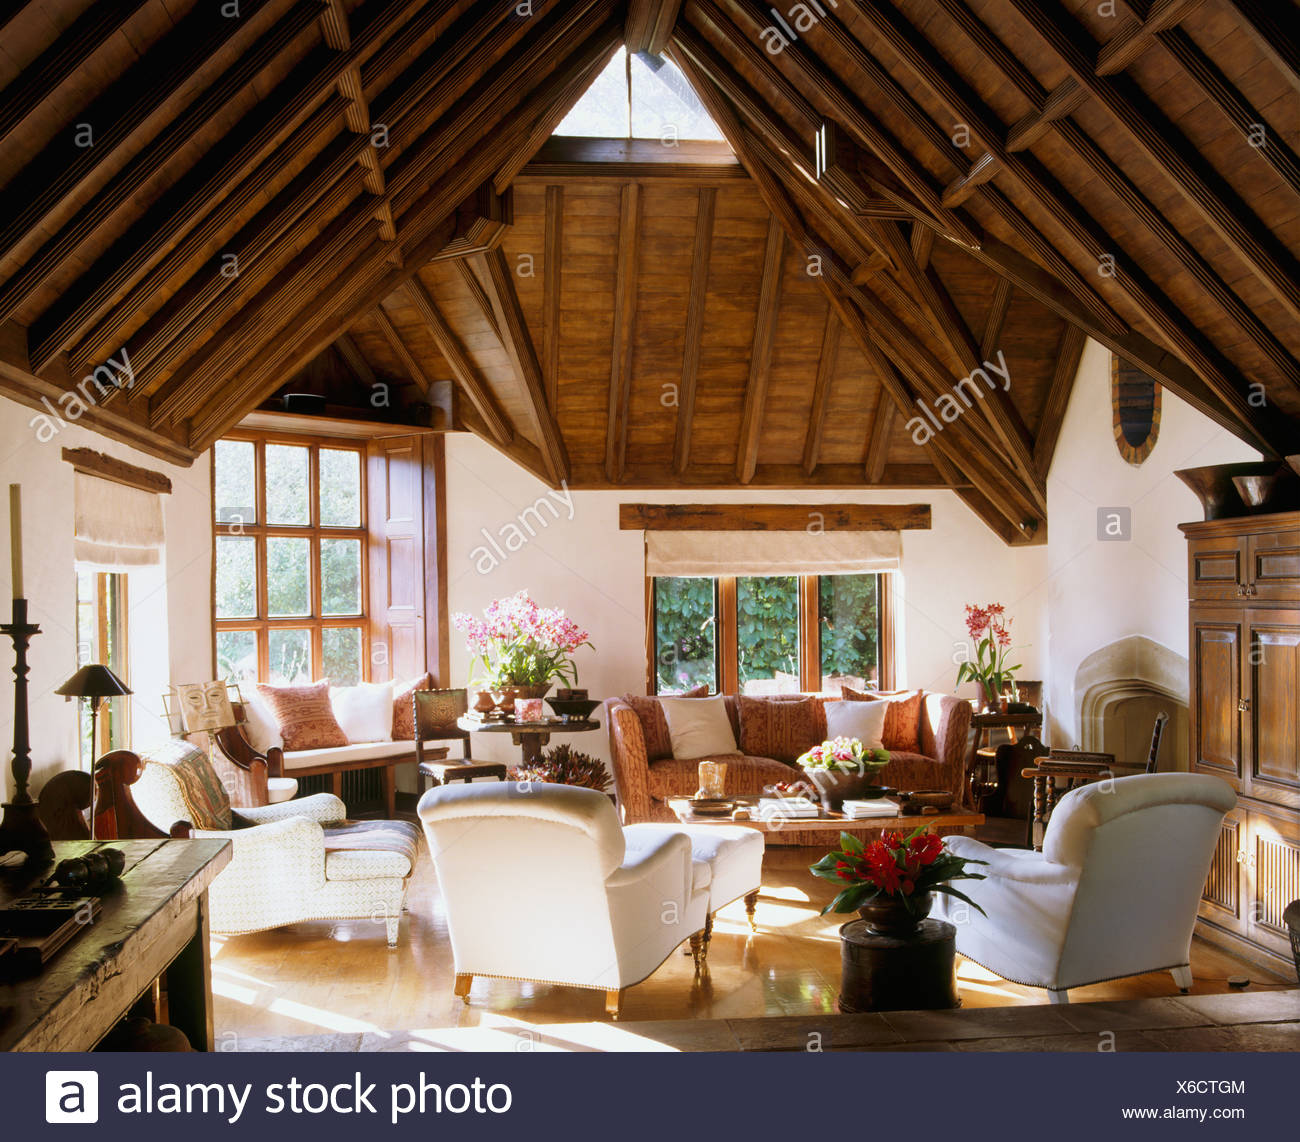 High, vaulted beamed roof in large barn conversion sitting room with white armchairs and sofa and peach Knole sofa - Stock Image